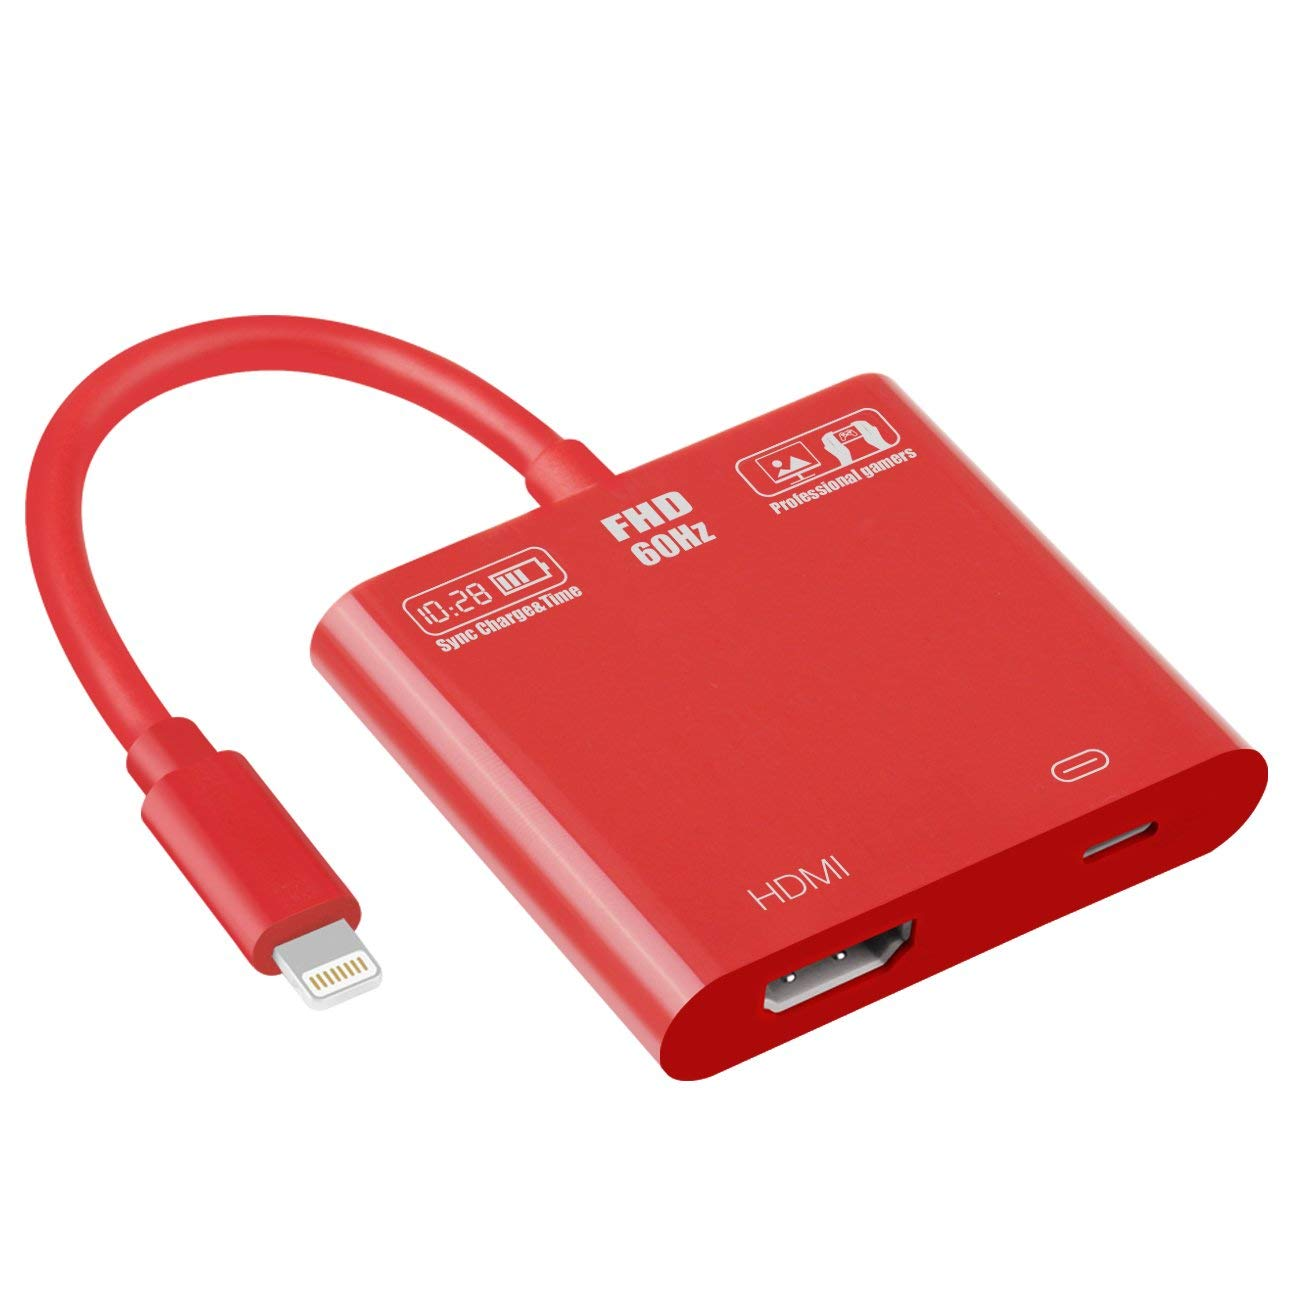 Lightning to HDMI Adapter, 1080P 8 Pin Lightning to Hdmi Female Video Adapter Digital AV Adapter for iPhone/iPad/IPod Models (red), I0367